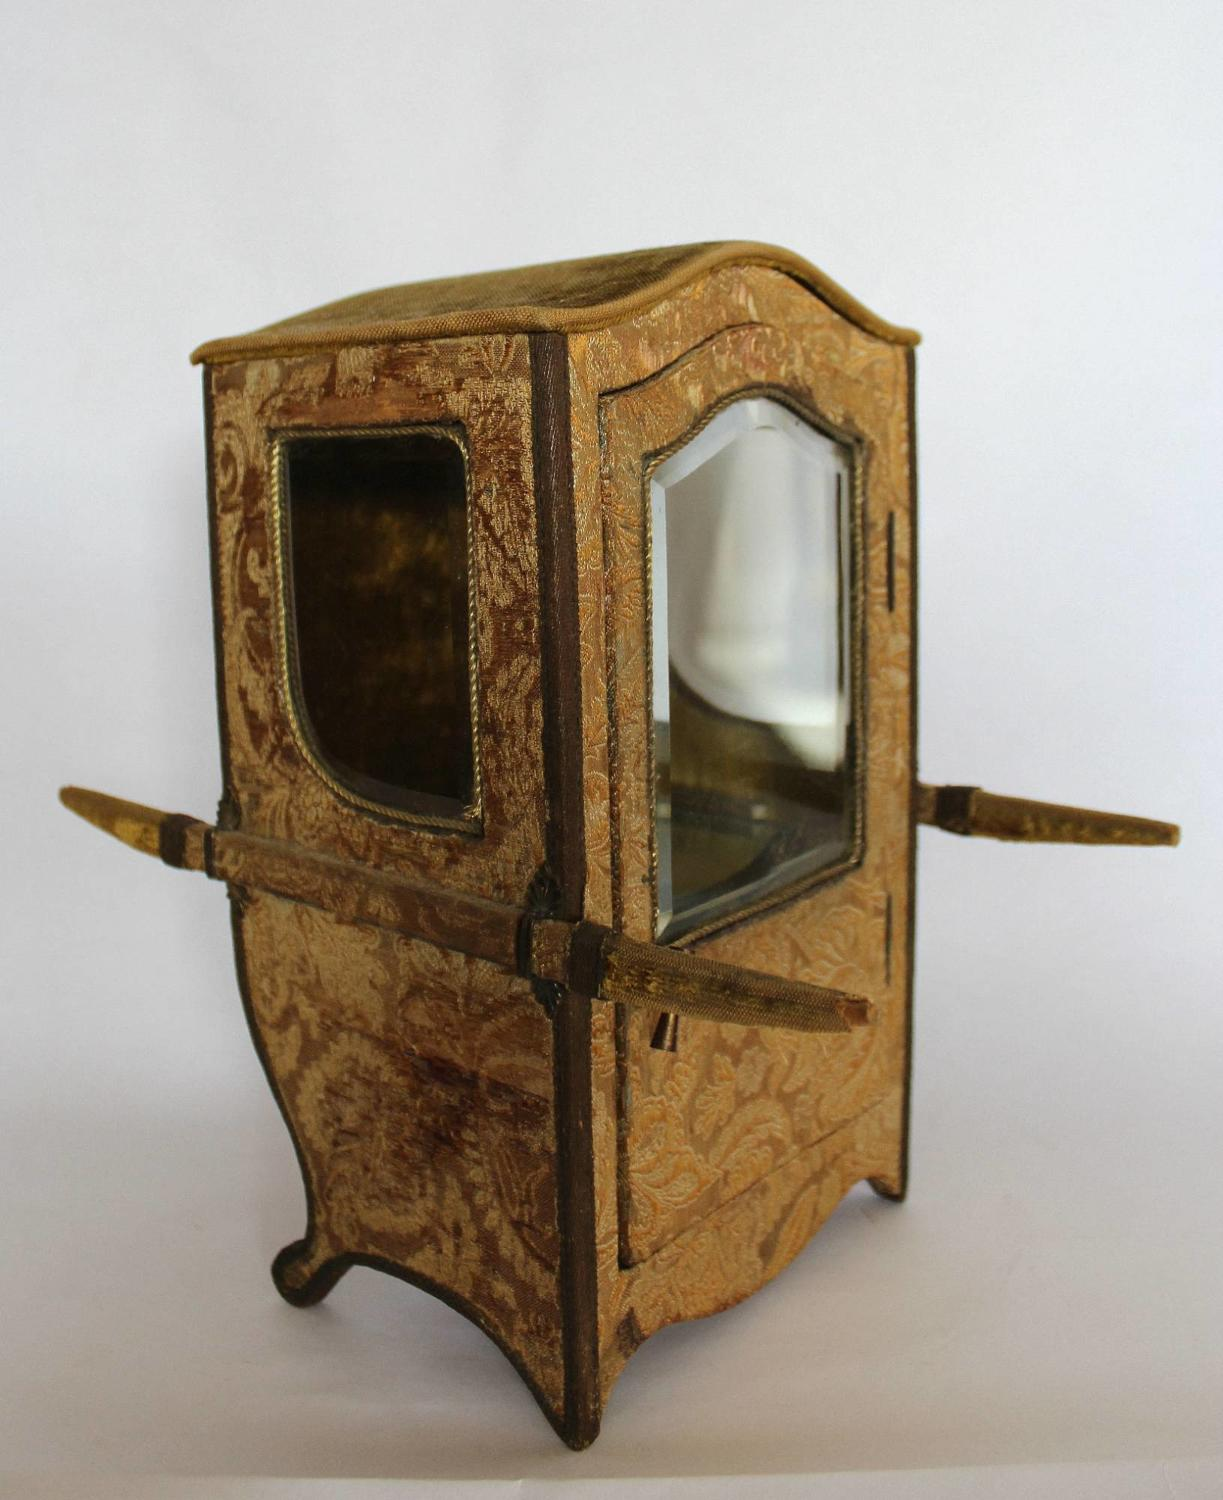 Miniature Sedan Chair Display Case